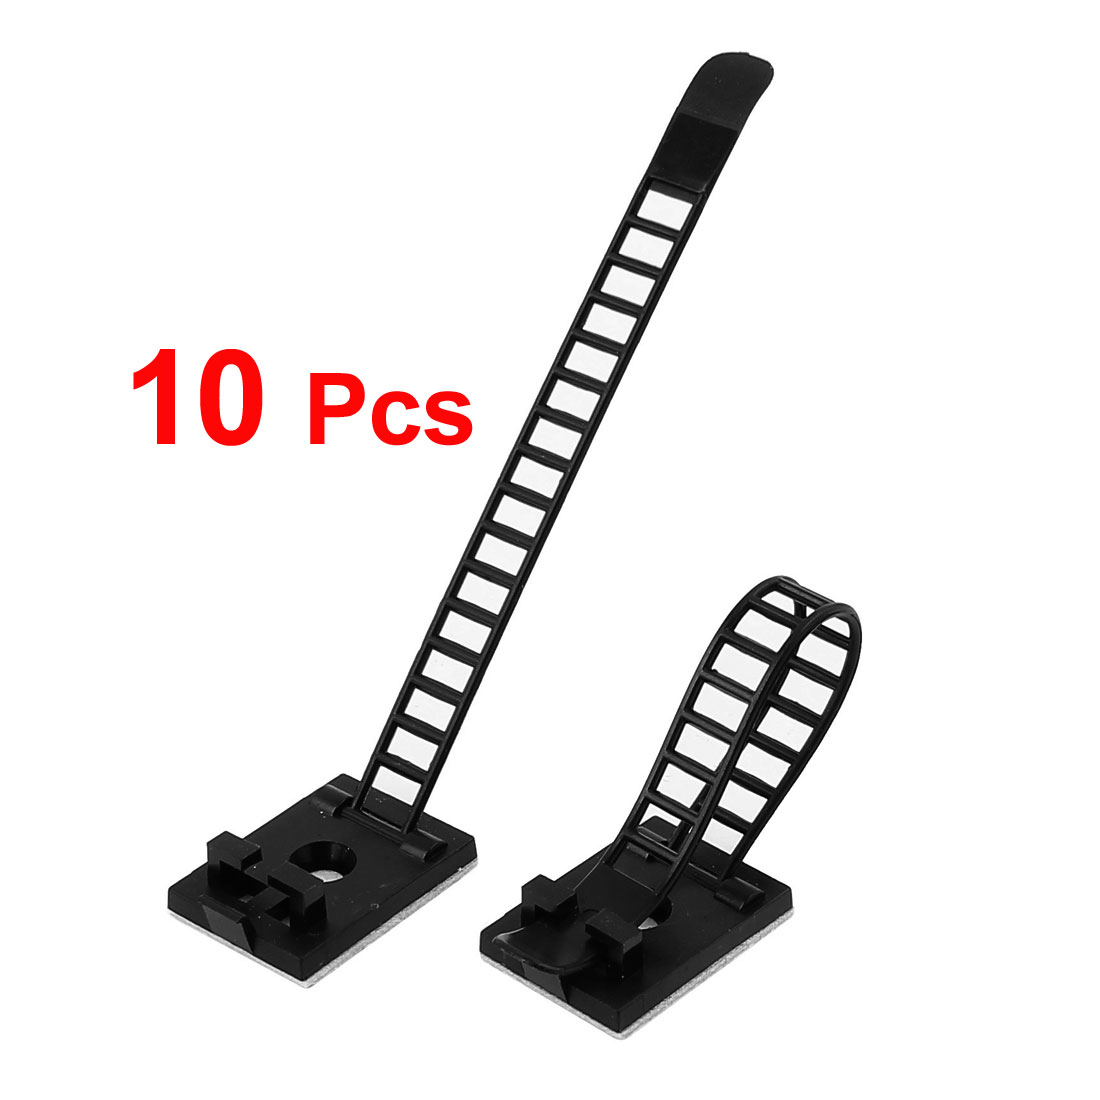 UXCELL 10 Pcs Self-Adhesive Backed Black Wire Clips Cable Clamp Adjustable Fixed Tie Mount